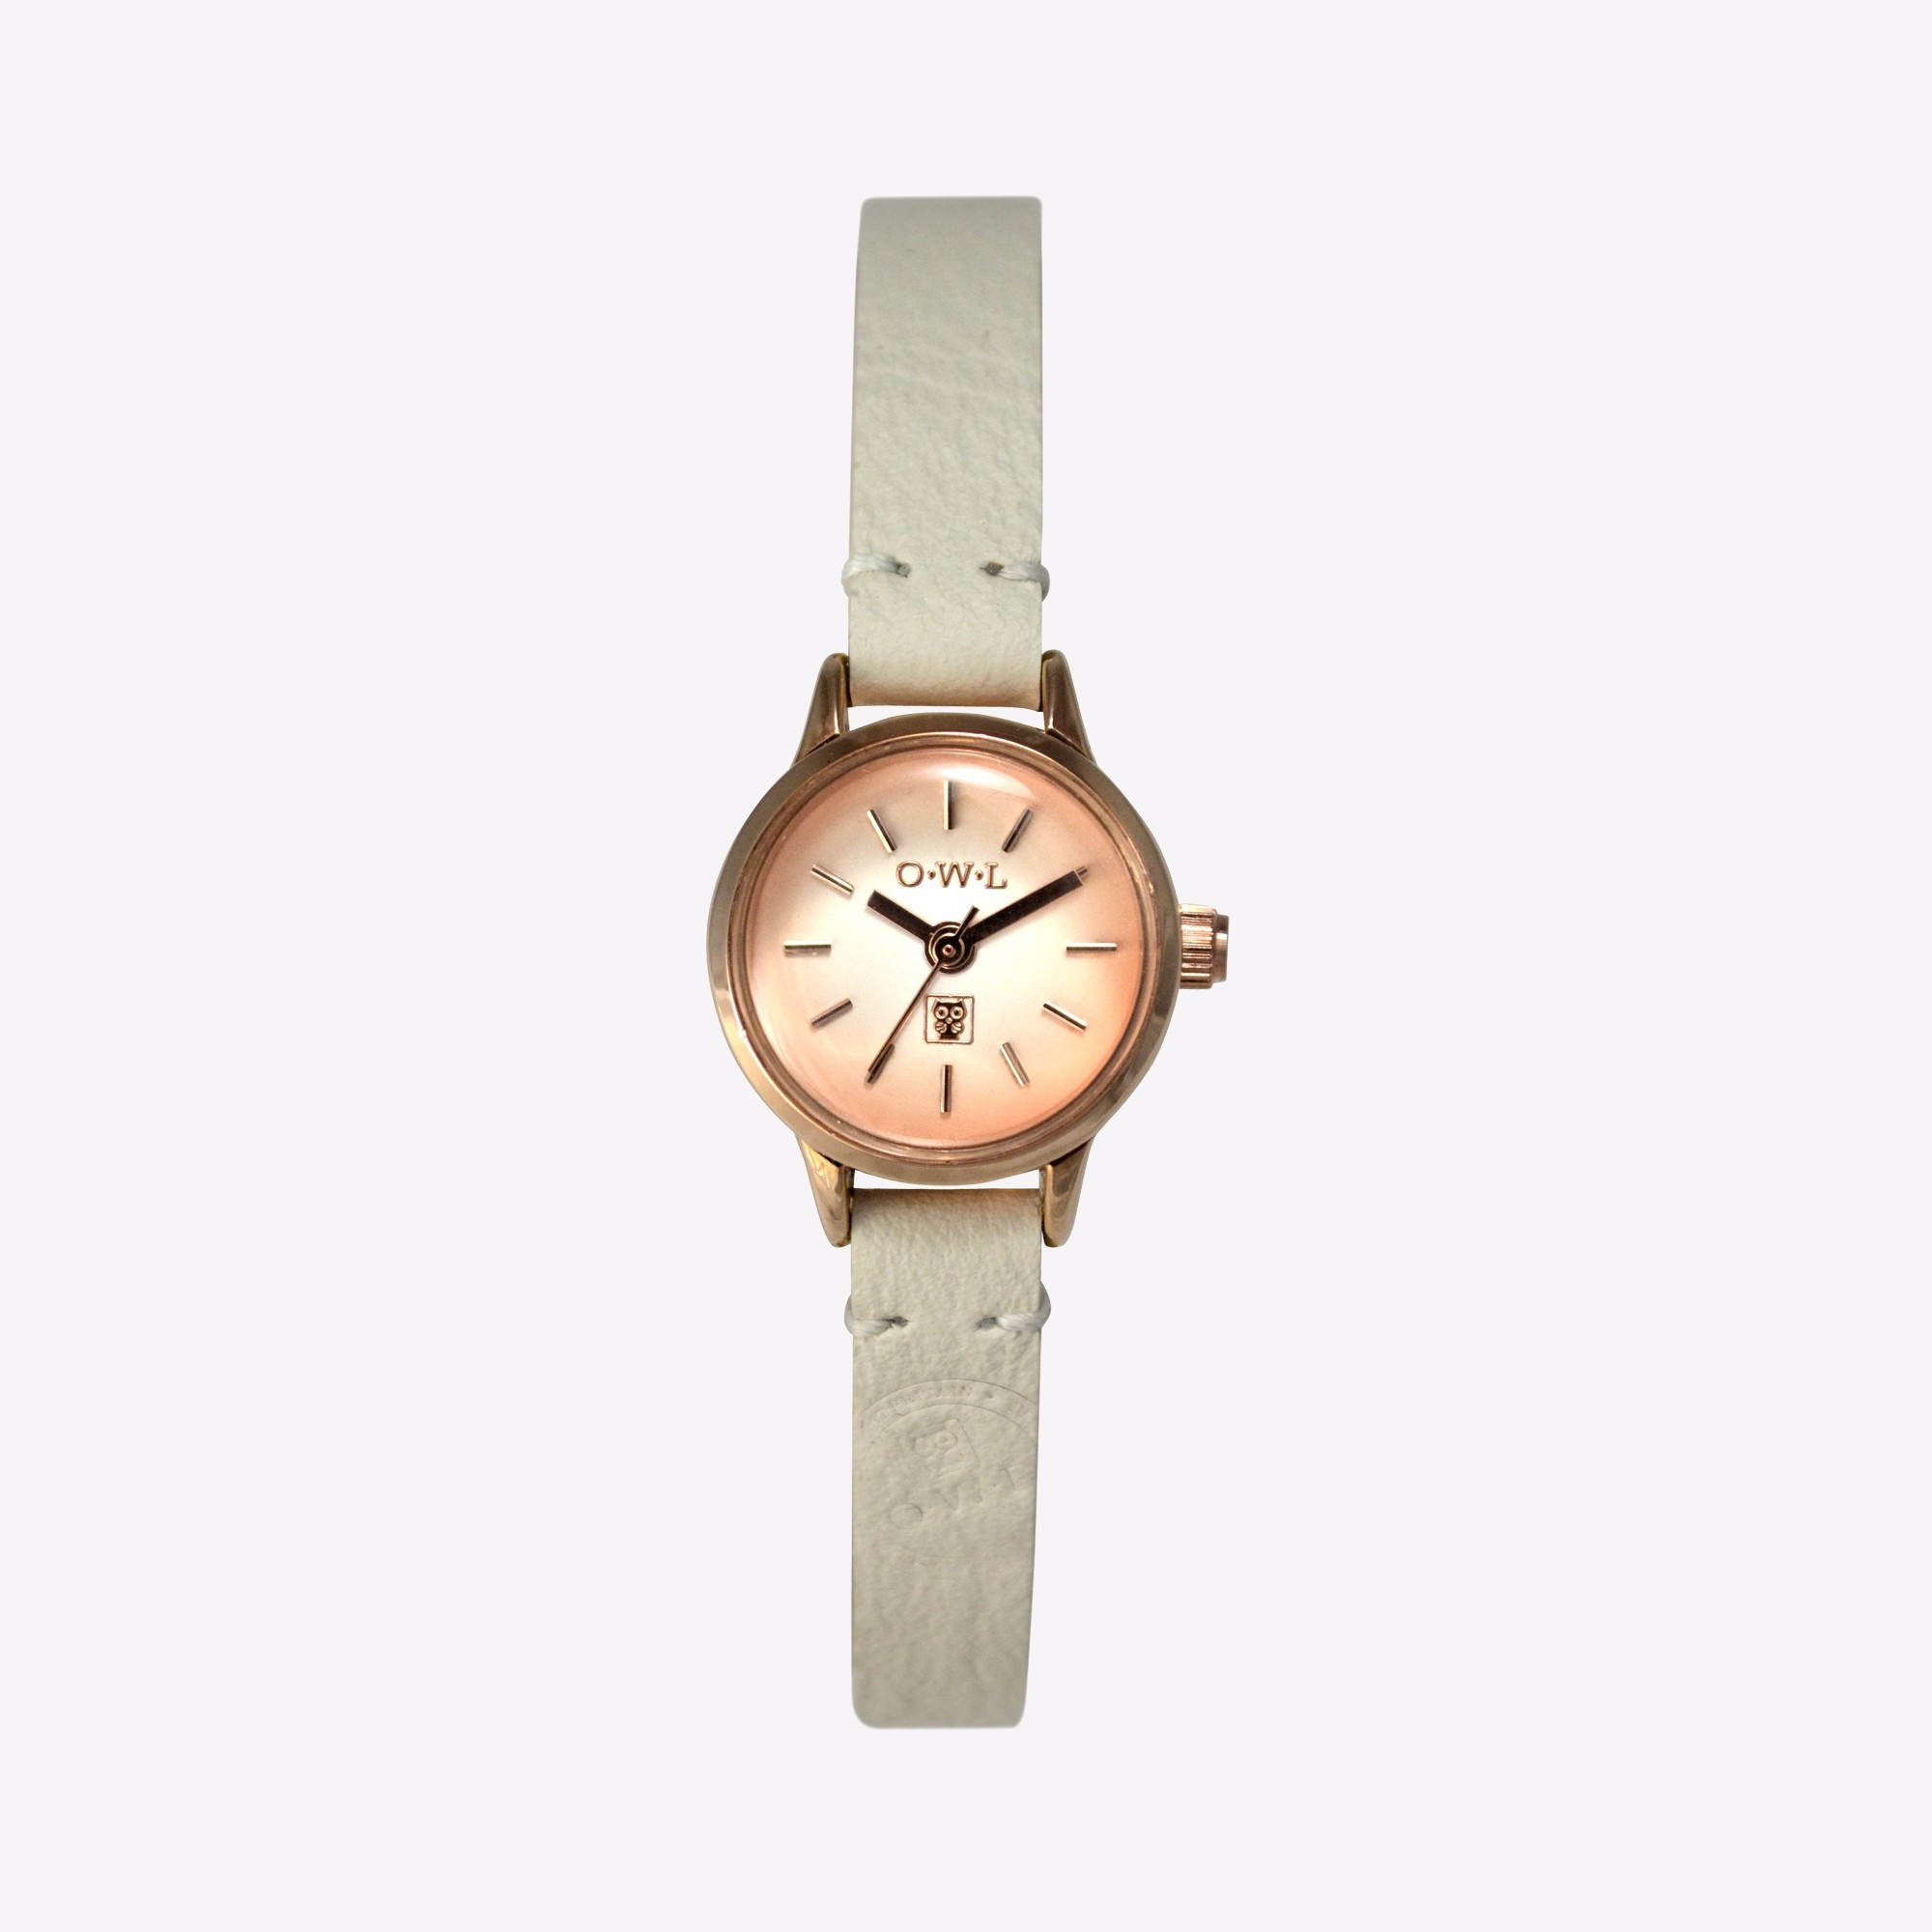 conwy watch in rose gold